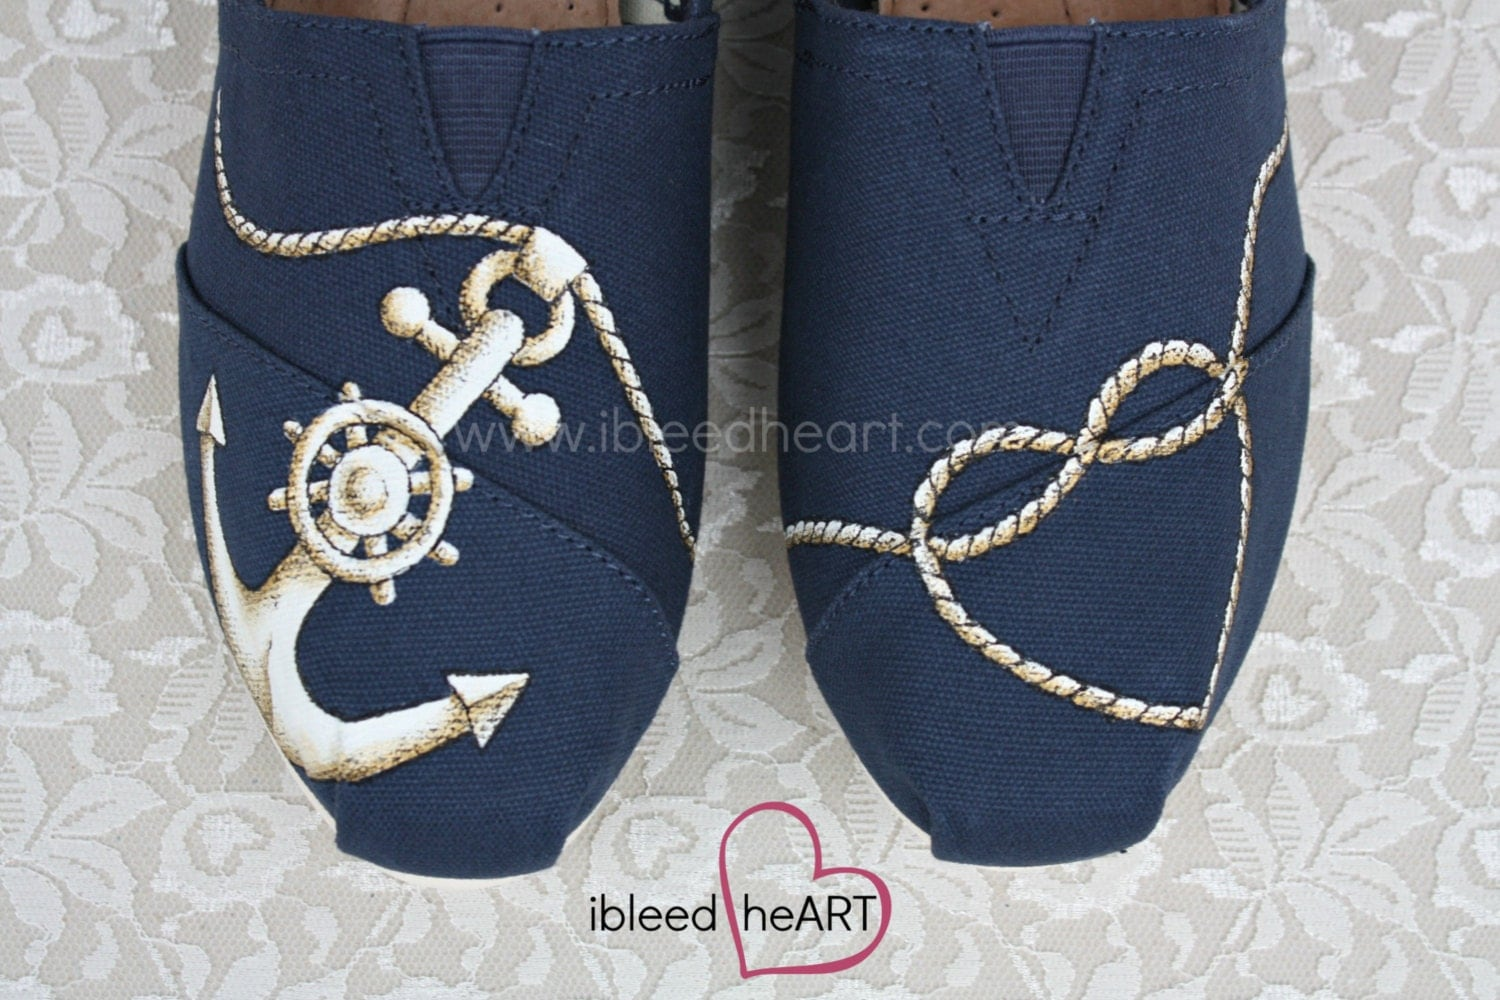 wedding toms toms wedding shoes Navy Anchor and Rope Heart Custom Painted TOMS Shoes Wedding Shoes Anchor TOMS Nautical Clothing Navy Shoes Boating Seafaring